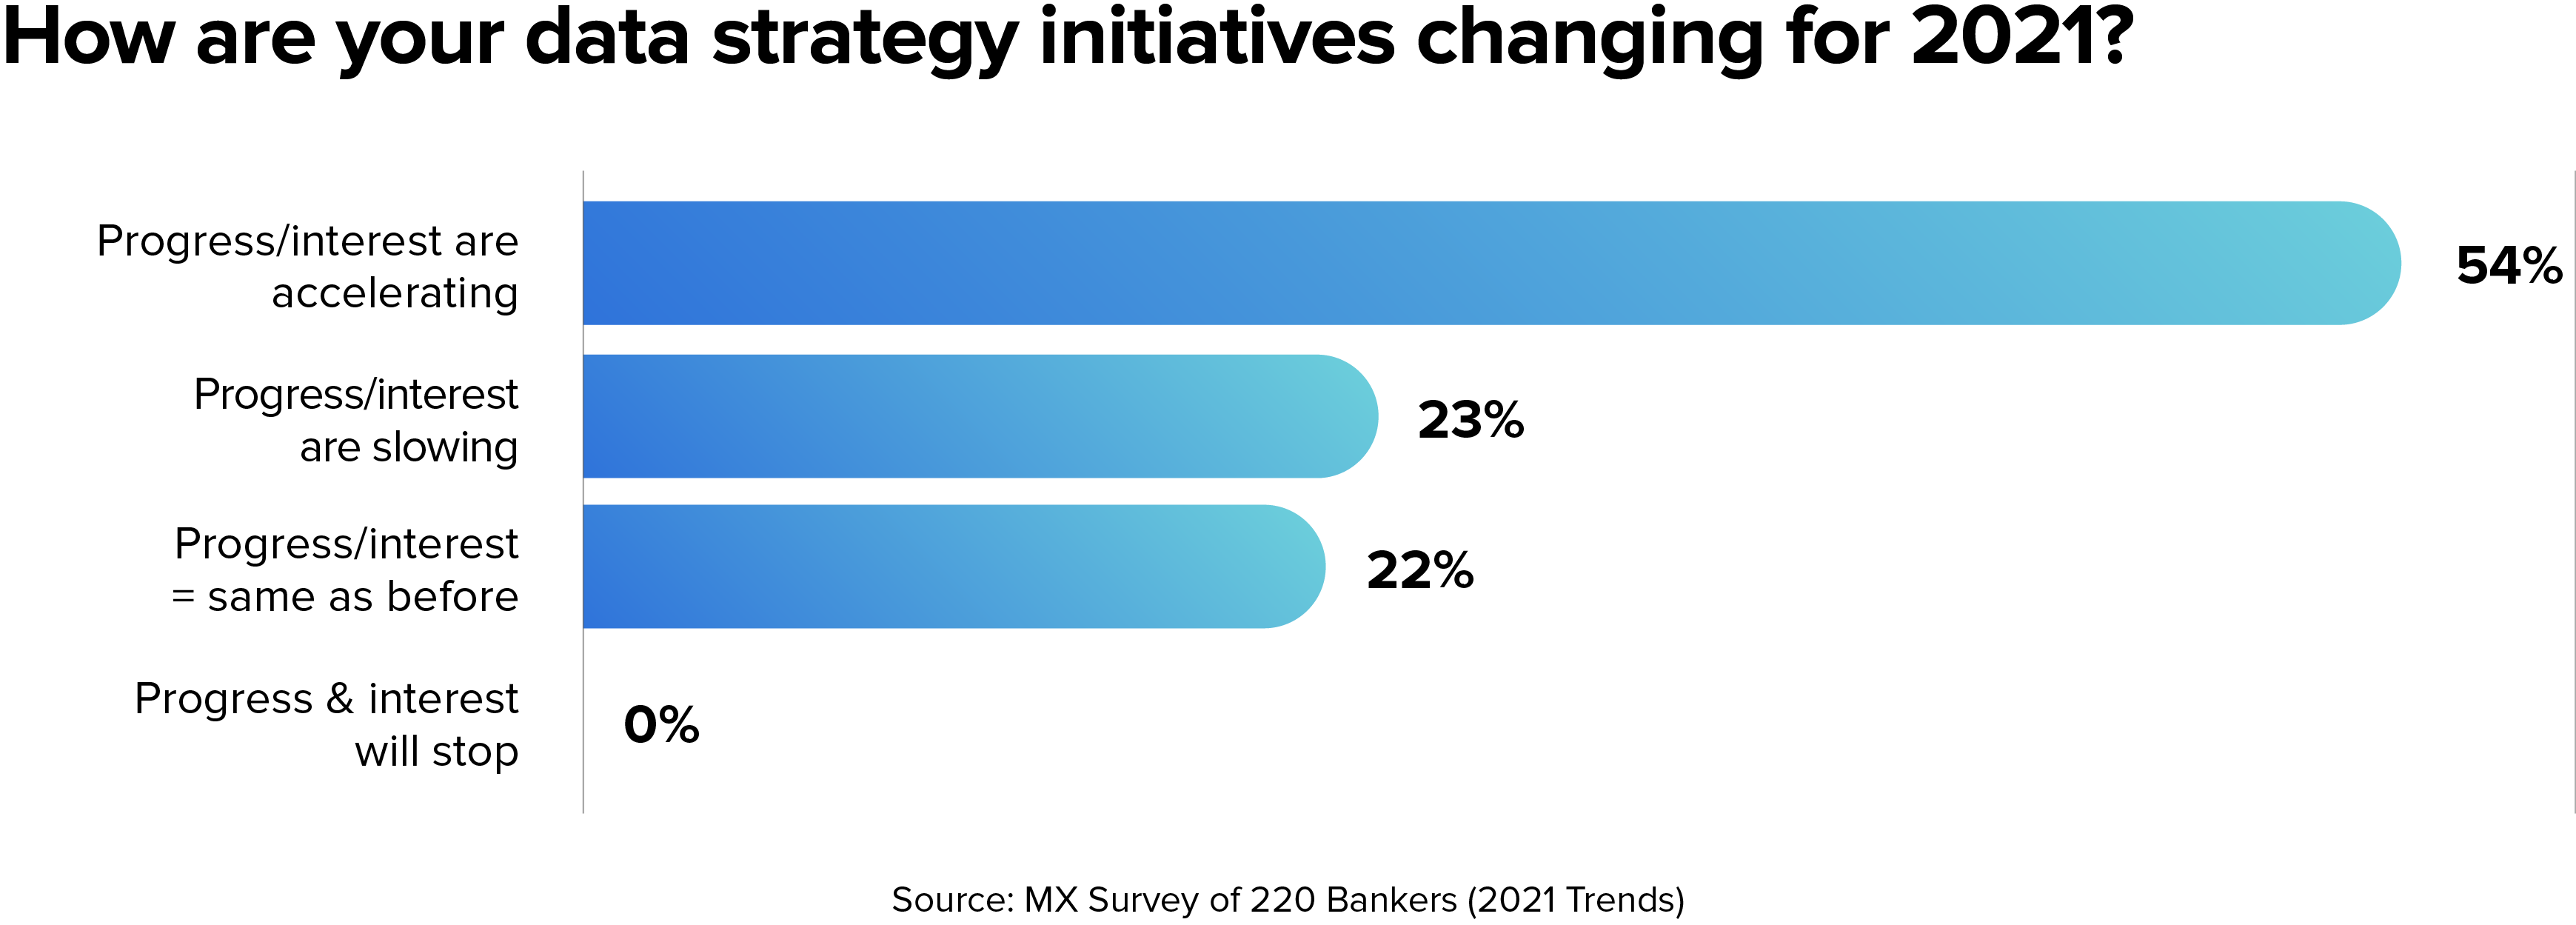 2021 bank data priorities